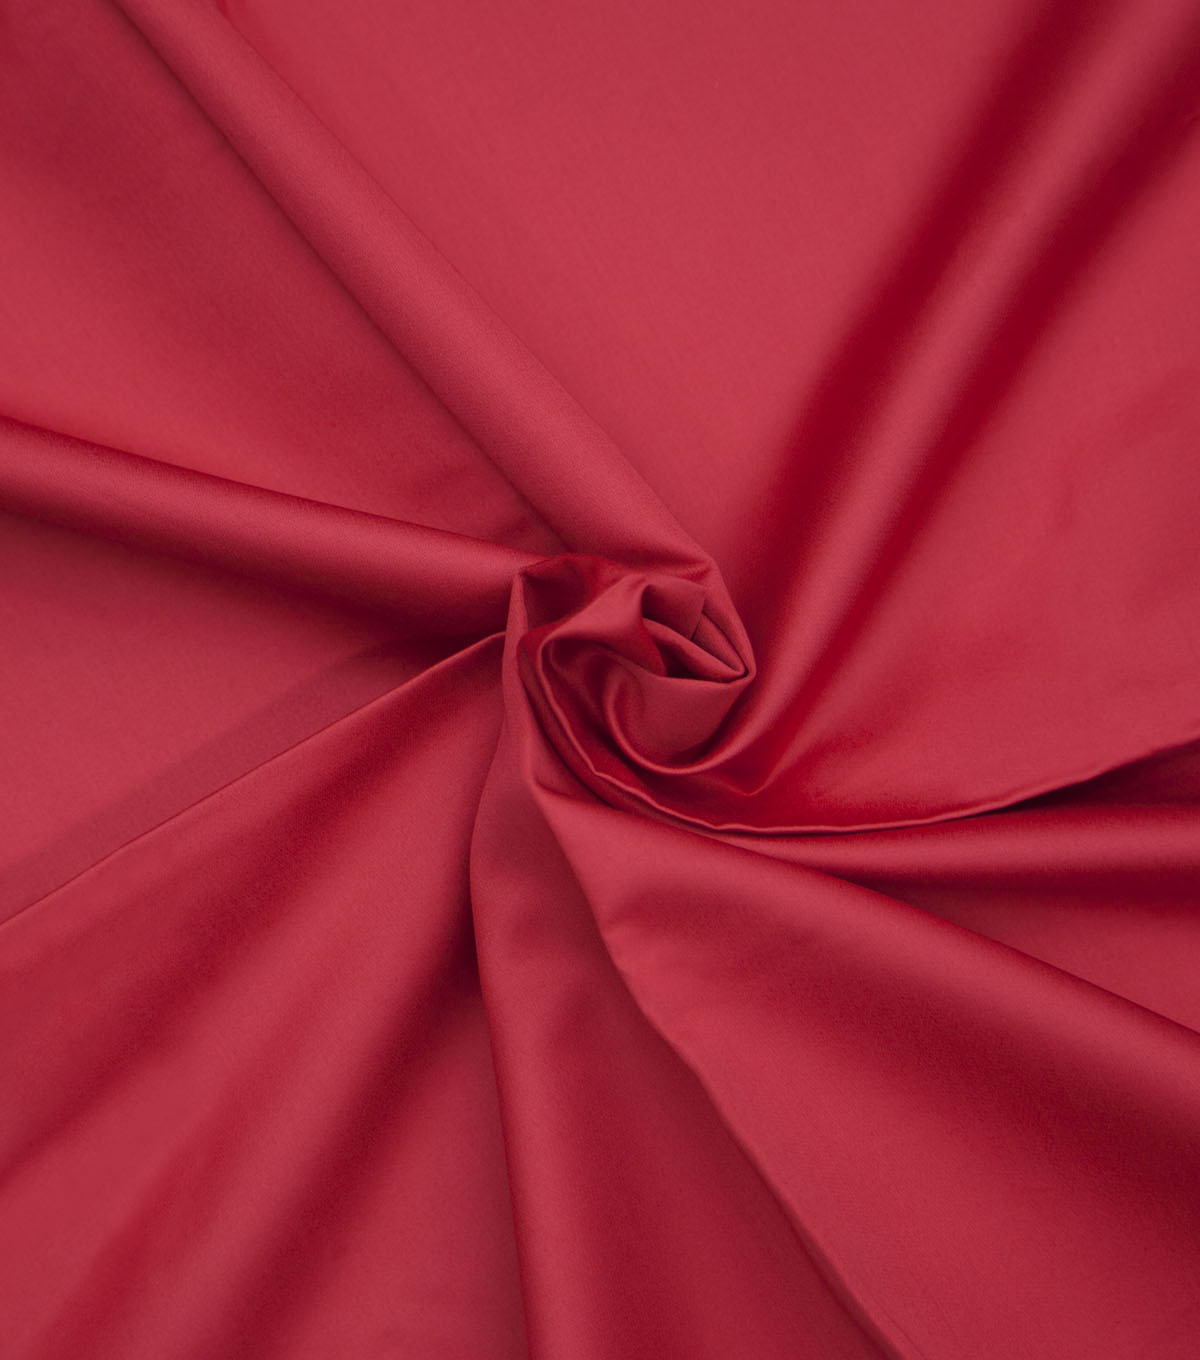 Supima Sateen Cotton Fabric-Solids, Red